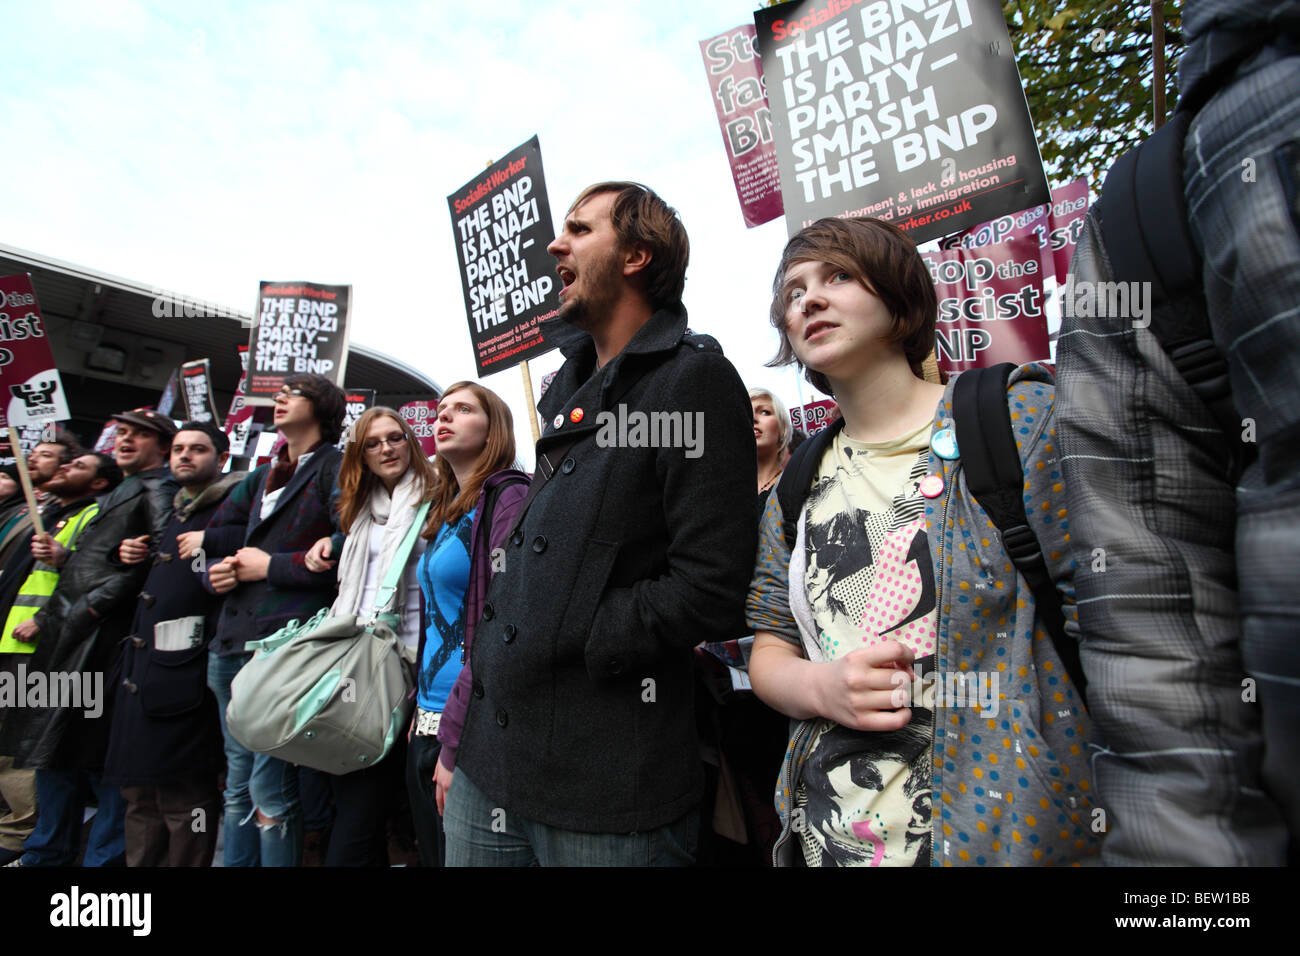 Protesters at the BBC against the BNP leader Nick Griffin's appearance on Question Time - Stock Image